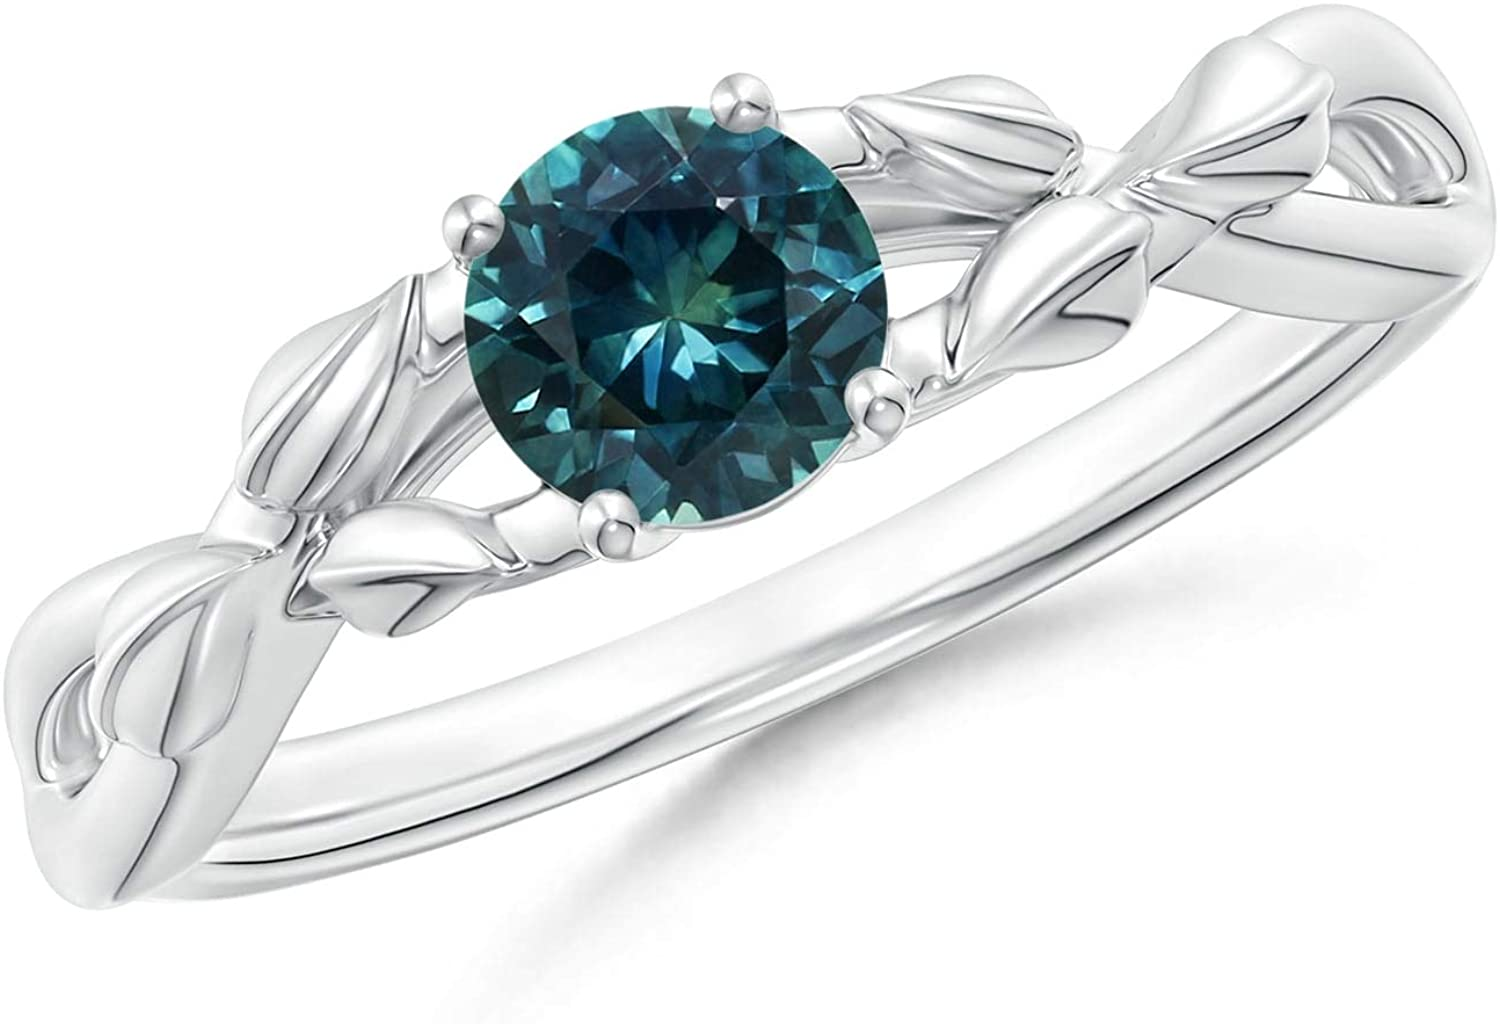 Nature Inspired Montana Sapphire Ring with Leaf Motifs (5mm Teal Sapphire)